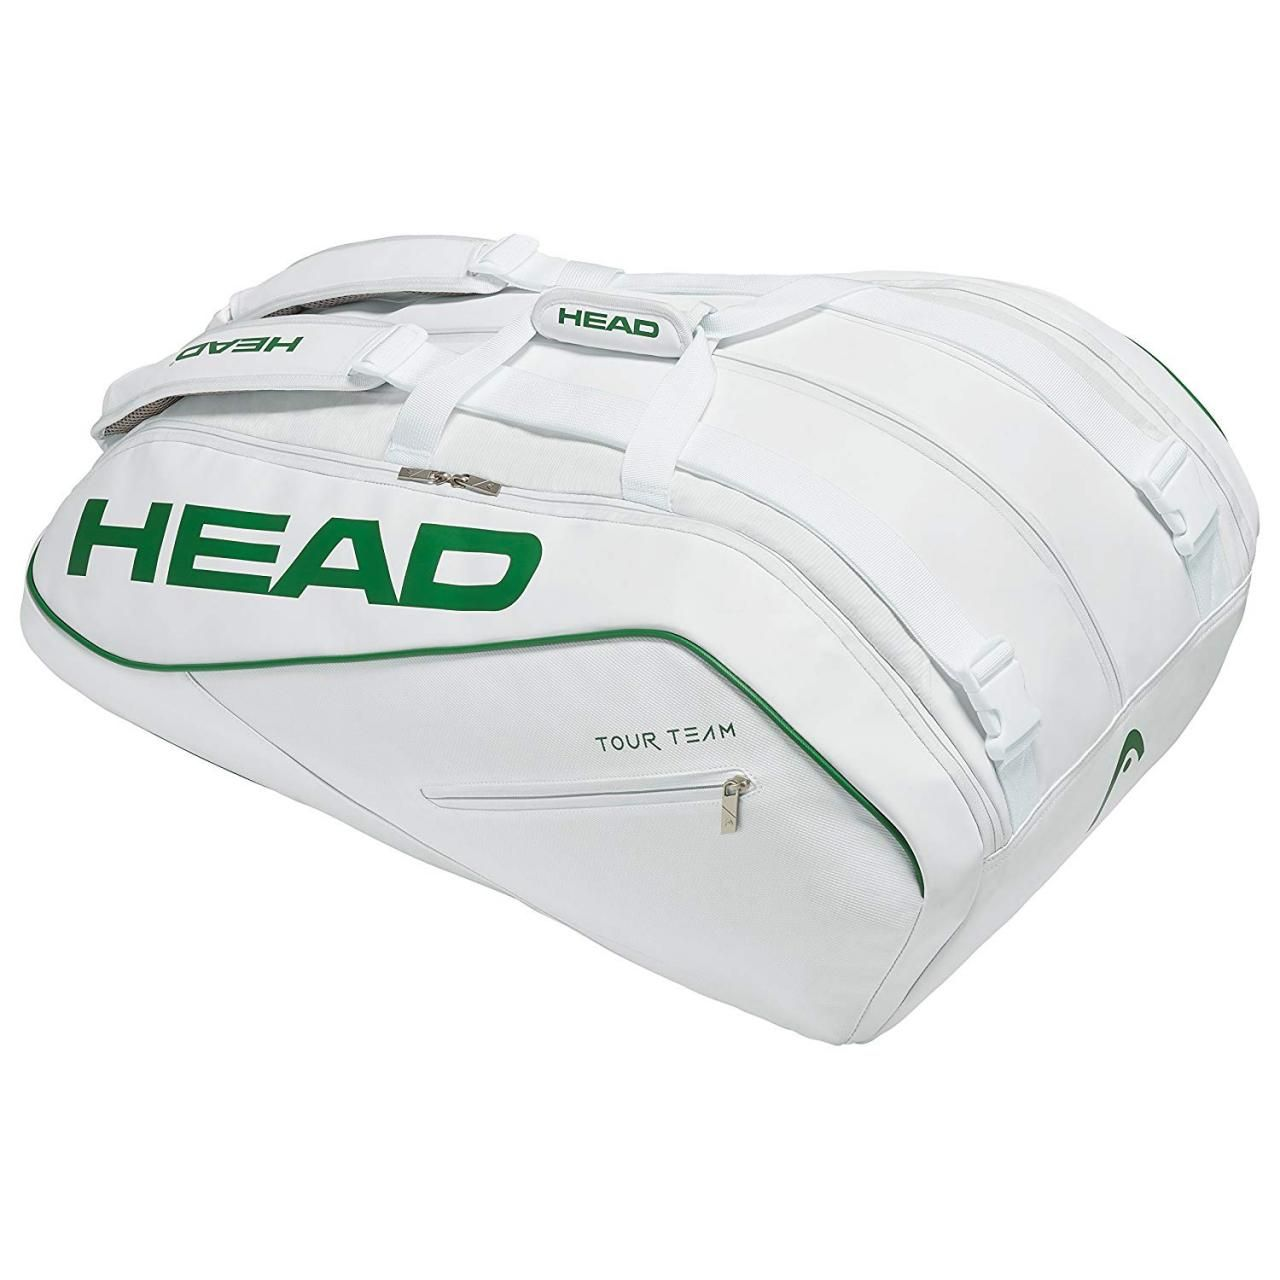 Opiniónes y Review de Raquetero Head…